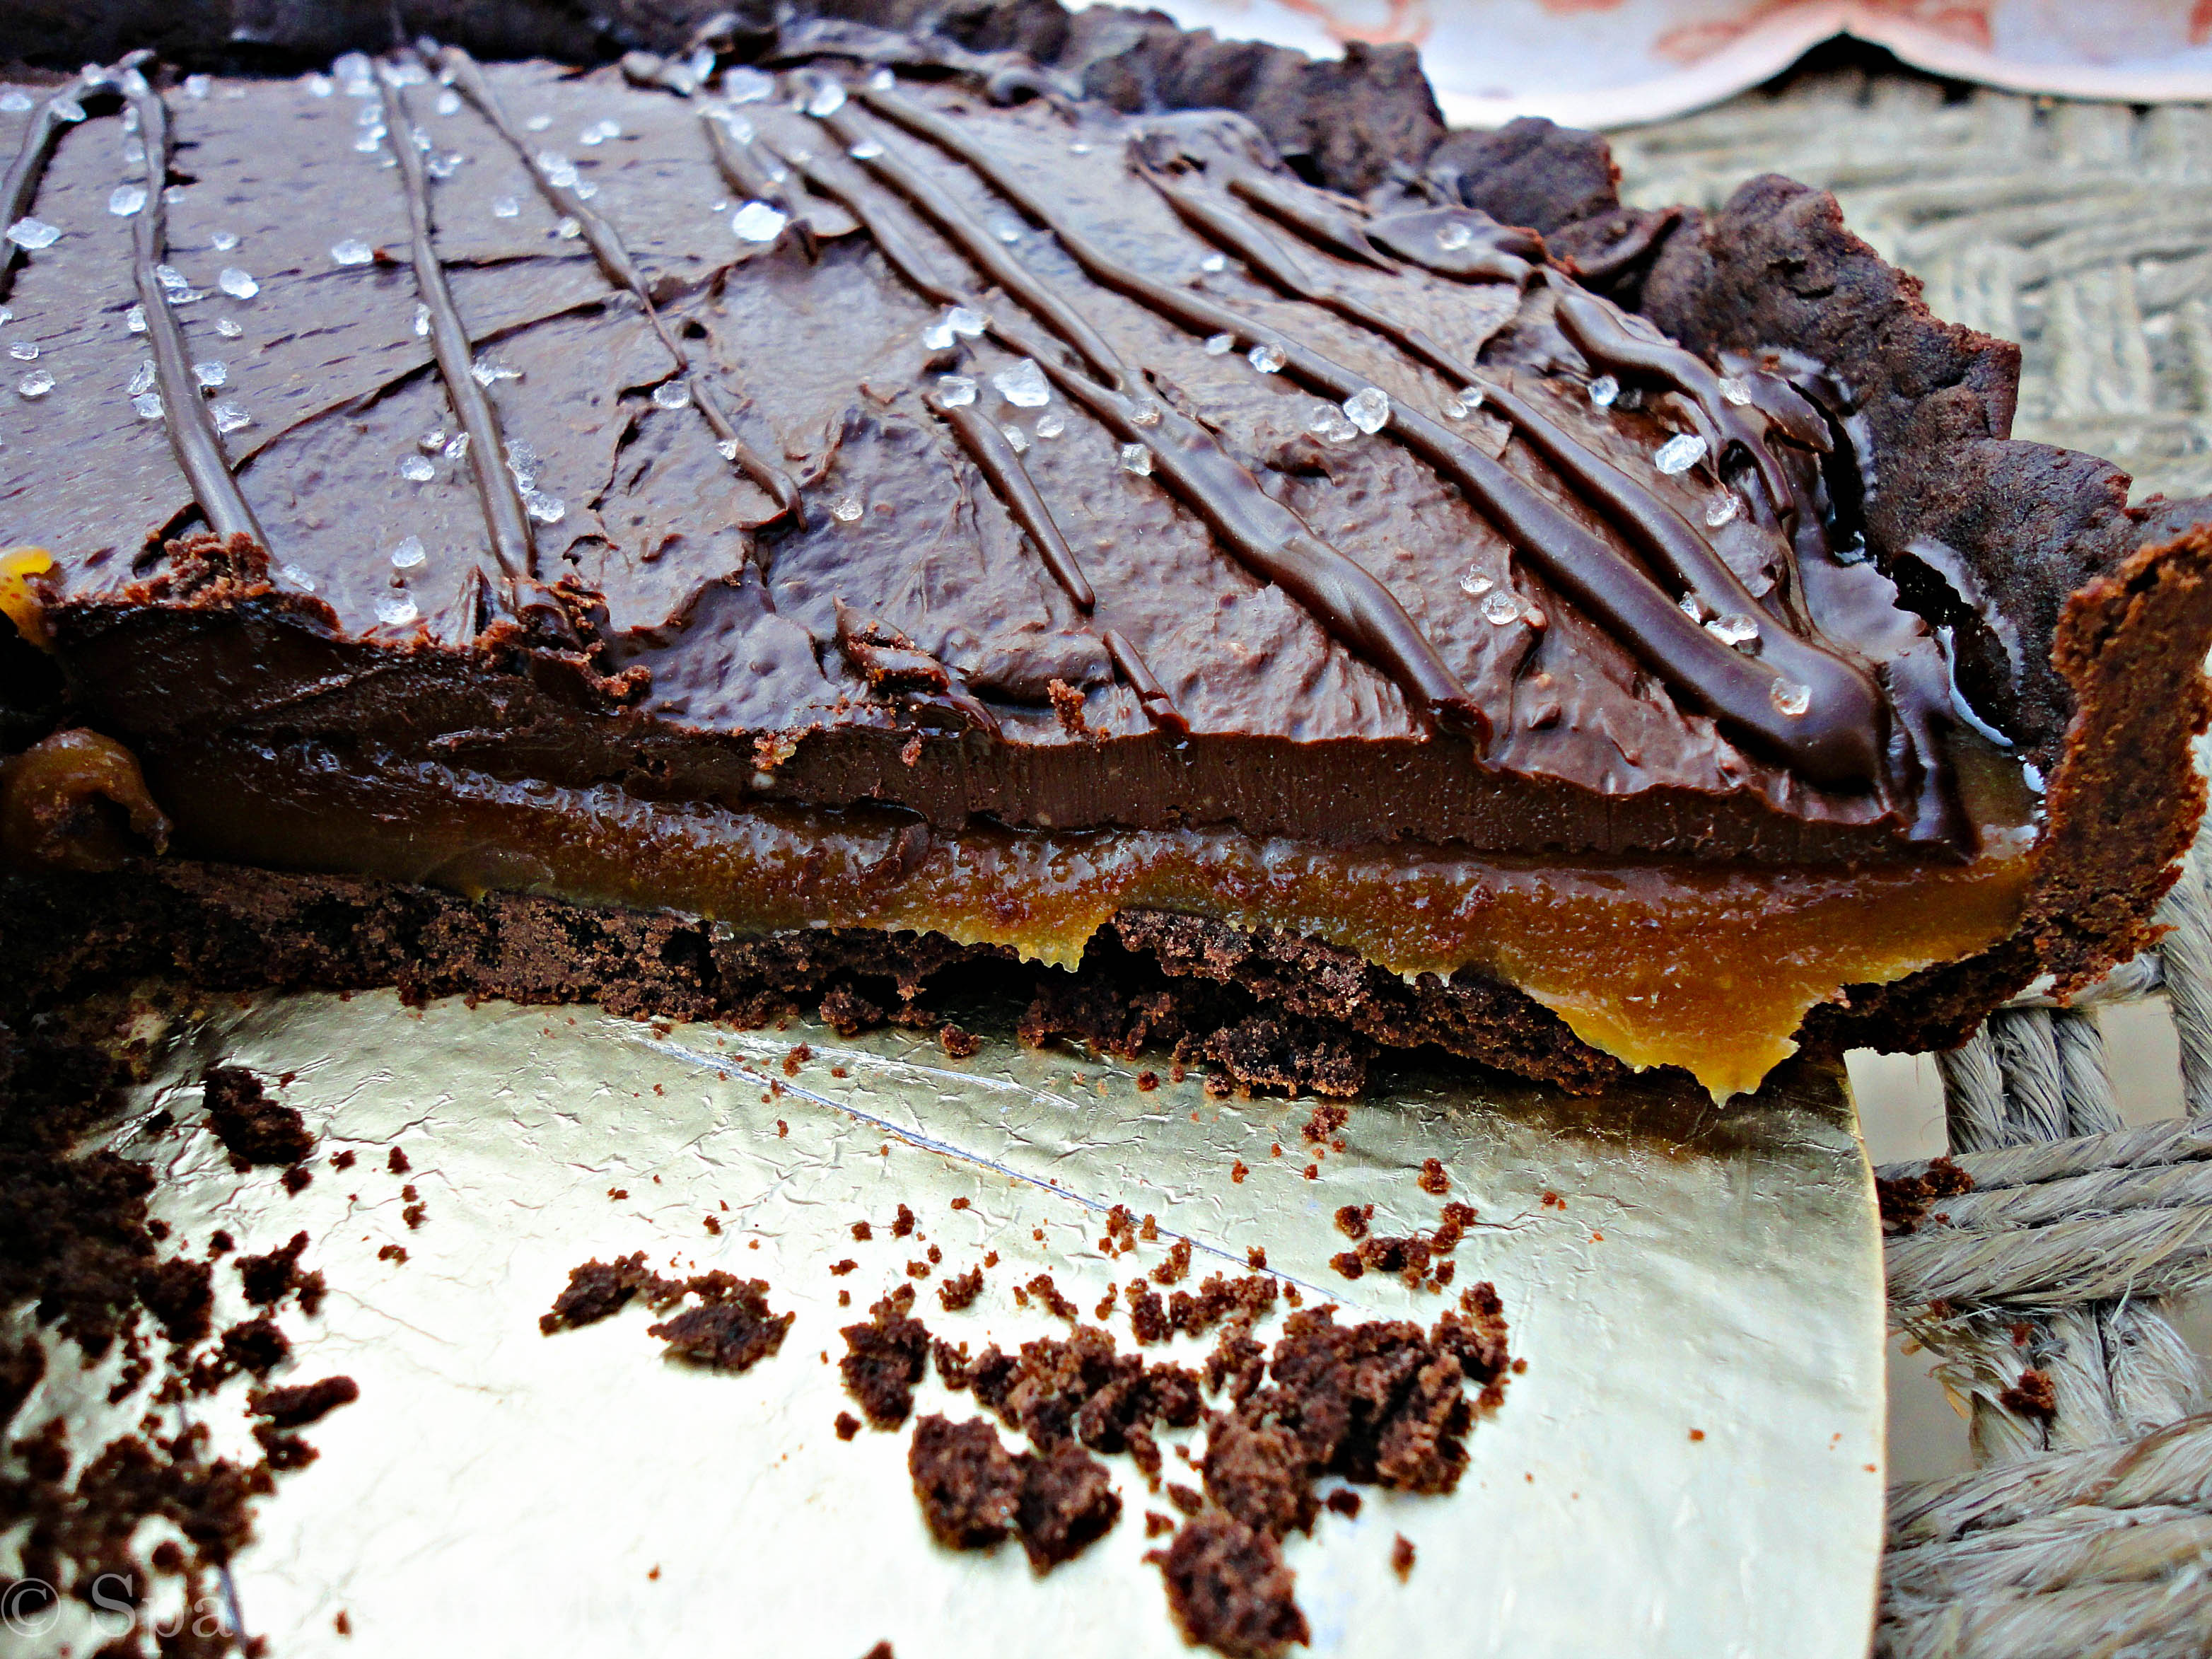 A dark chocolate all-butter cookie crust, lush salted caramel, and an incredibly decadent chocolate ganache –Salted Caramel Chocolate Tart